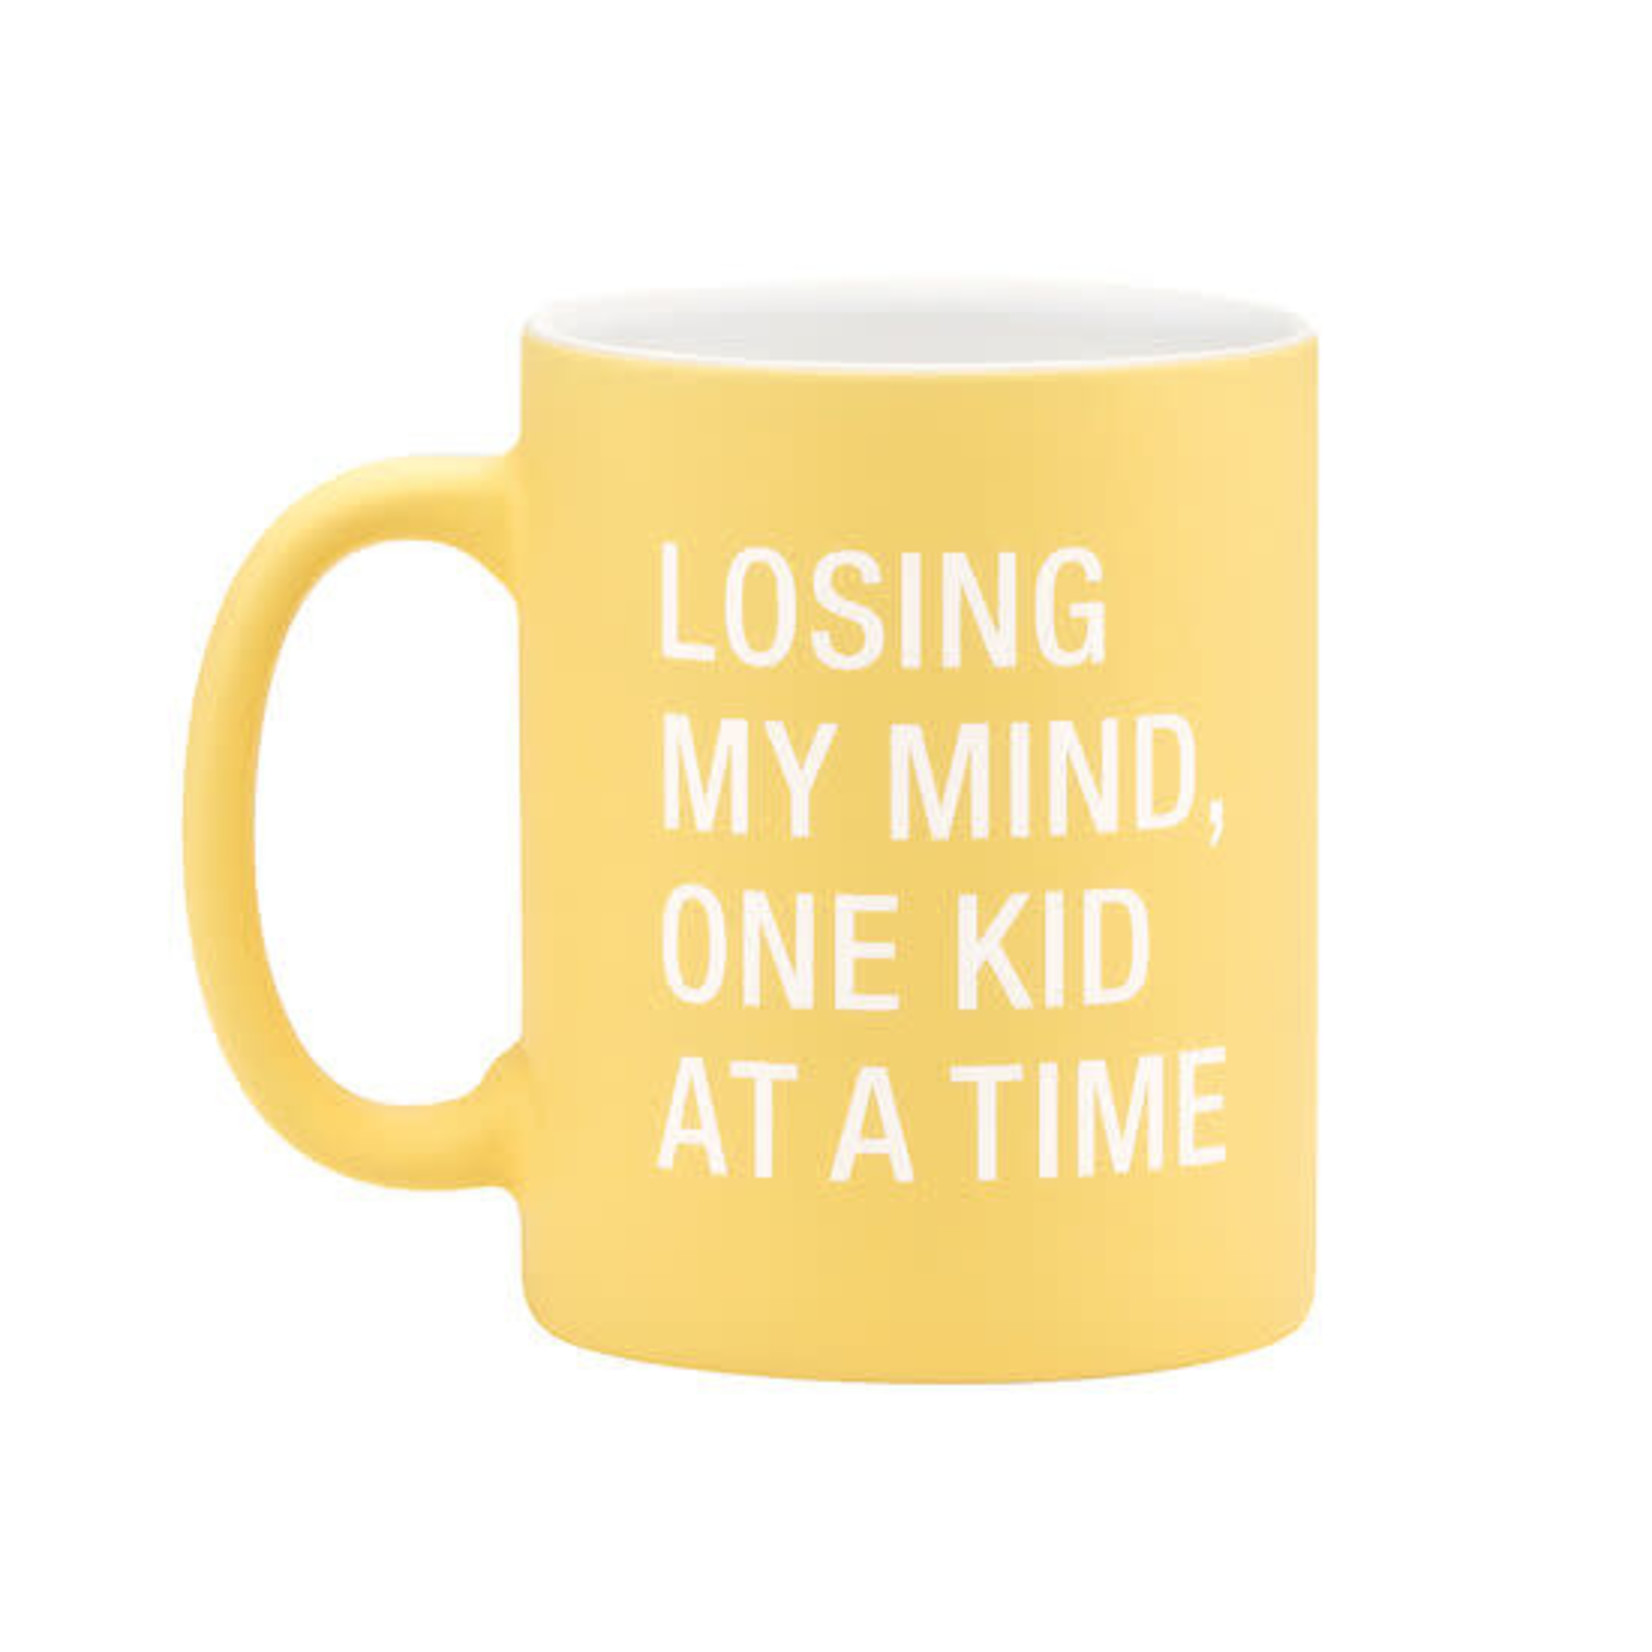 About Face Designs, Inc Mug: Losing My Mind